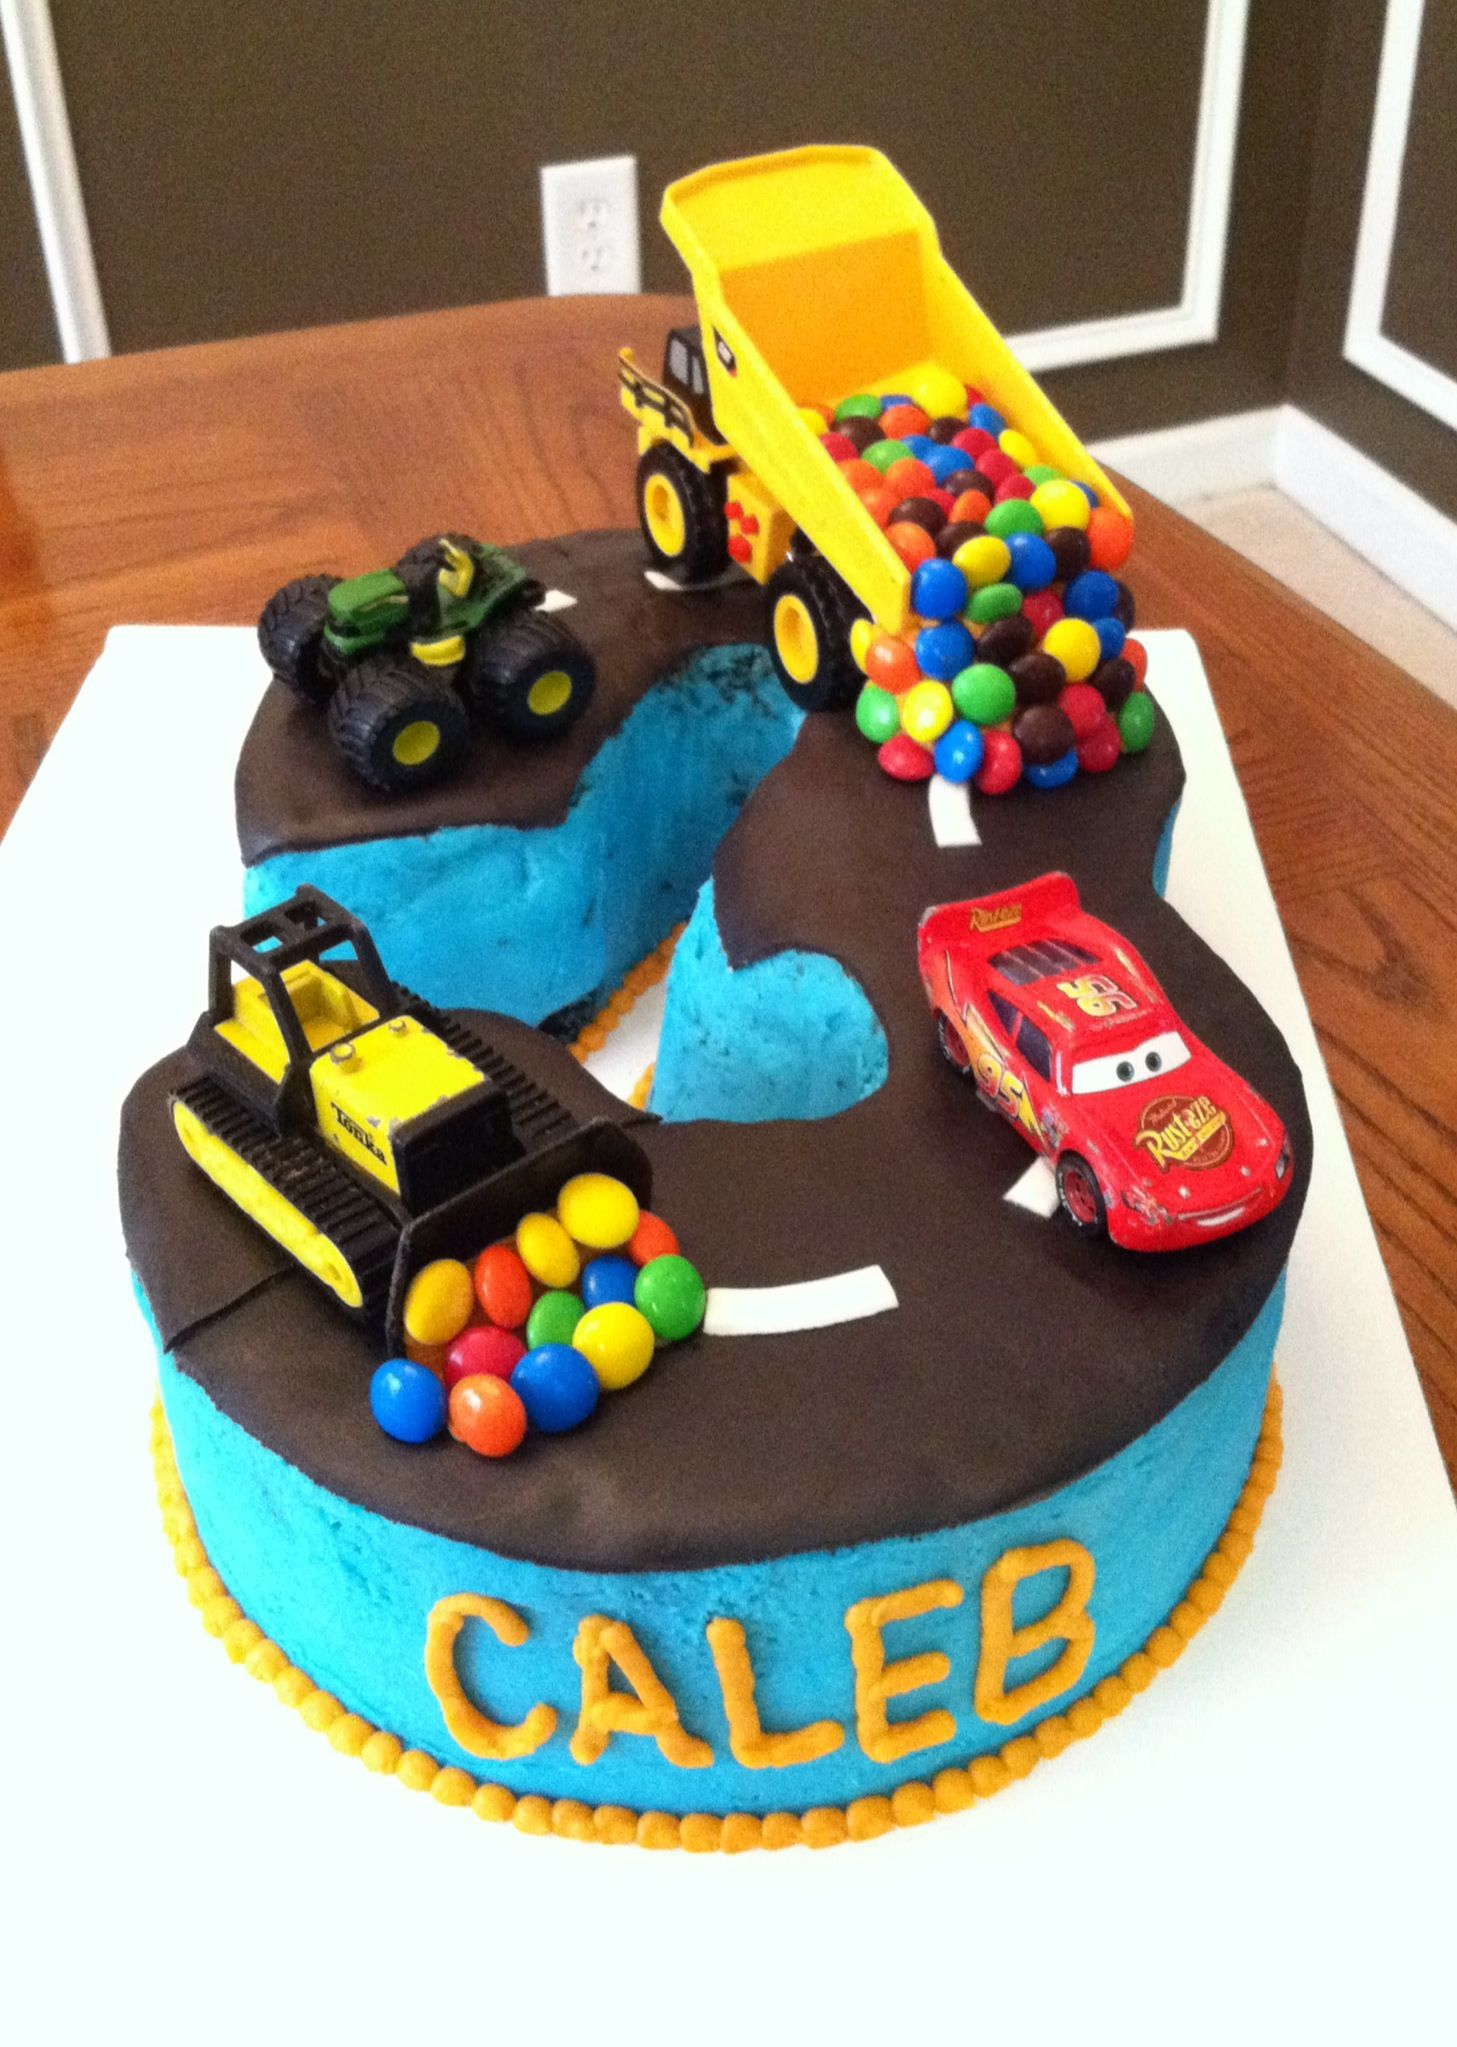 TruckTractorCarRoadNumber 3 cake Creations by Bethany me